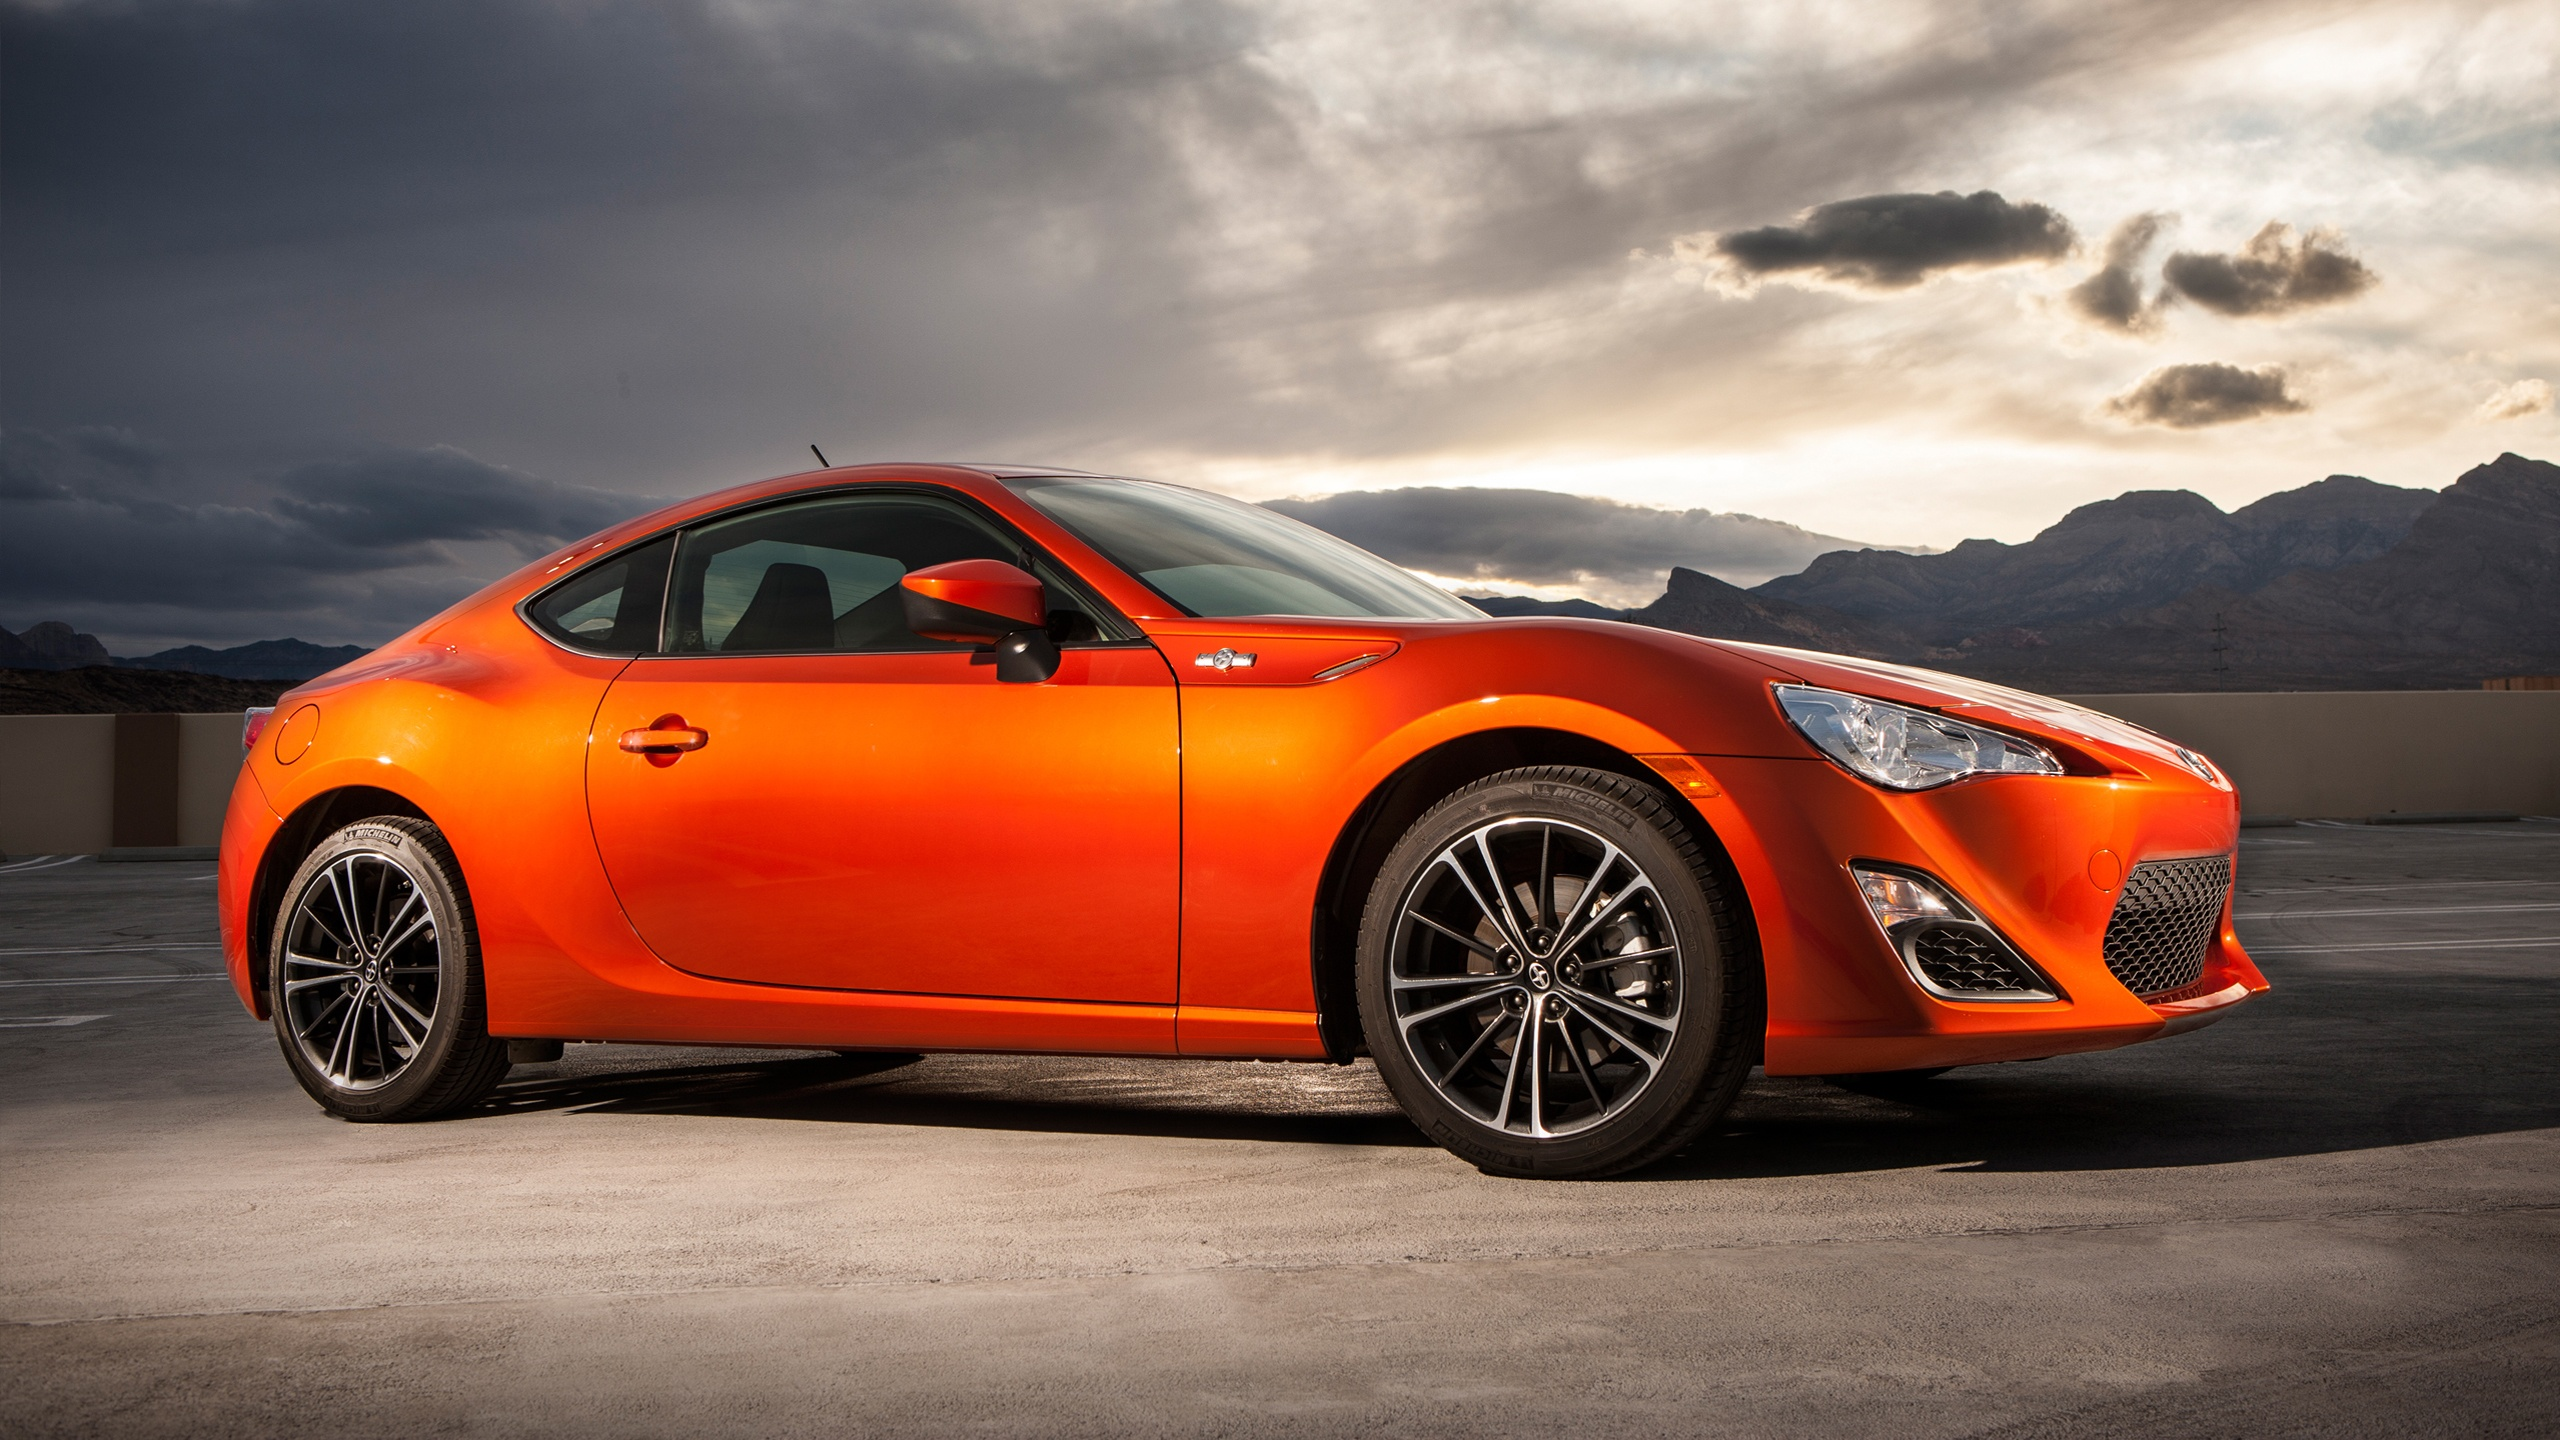 Wonderful Orange Subaru BRZ Wallpaper